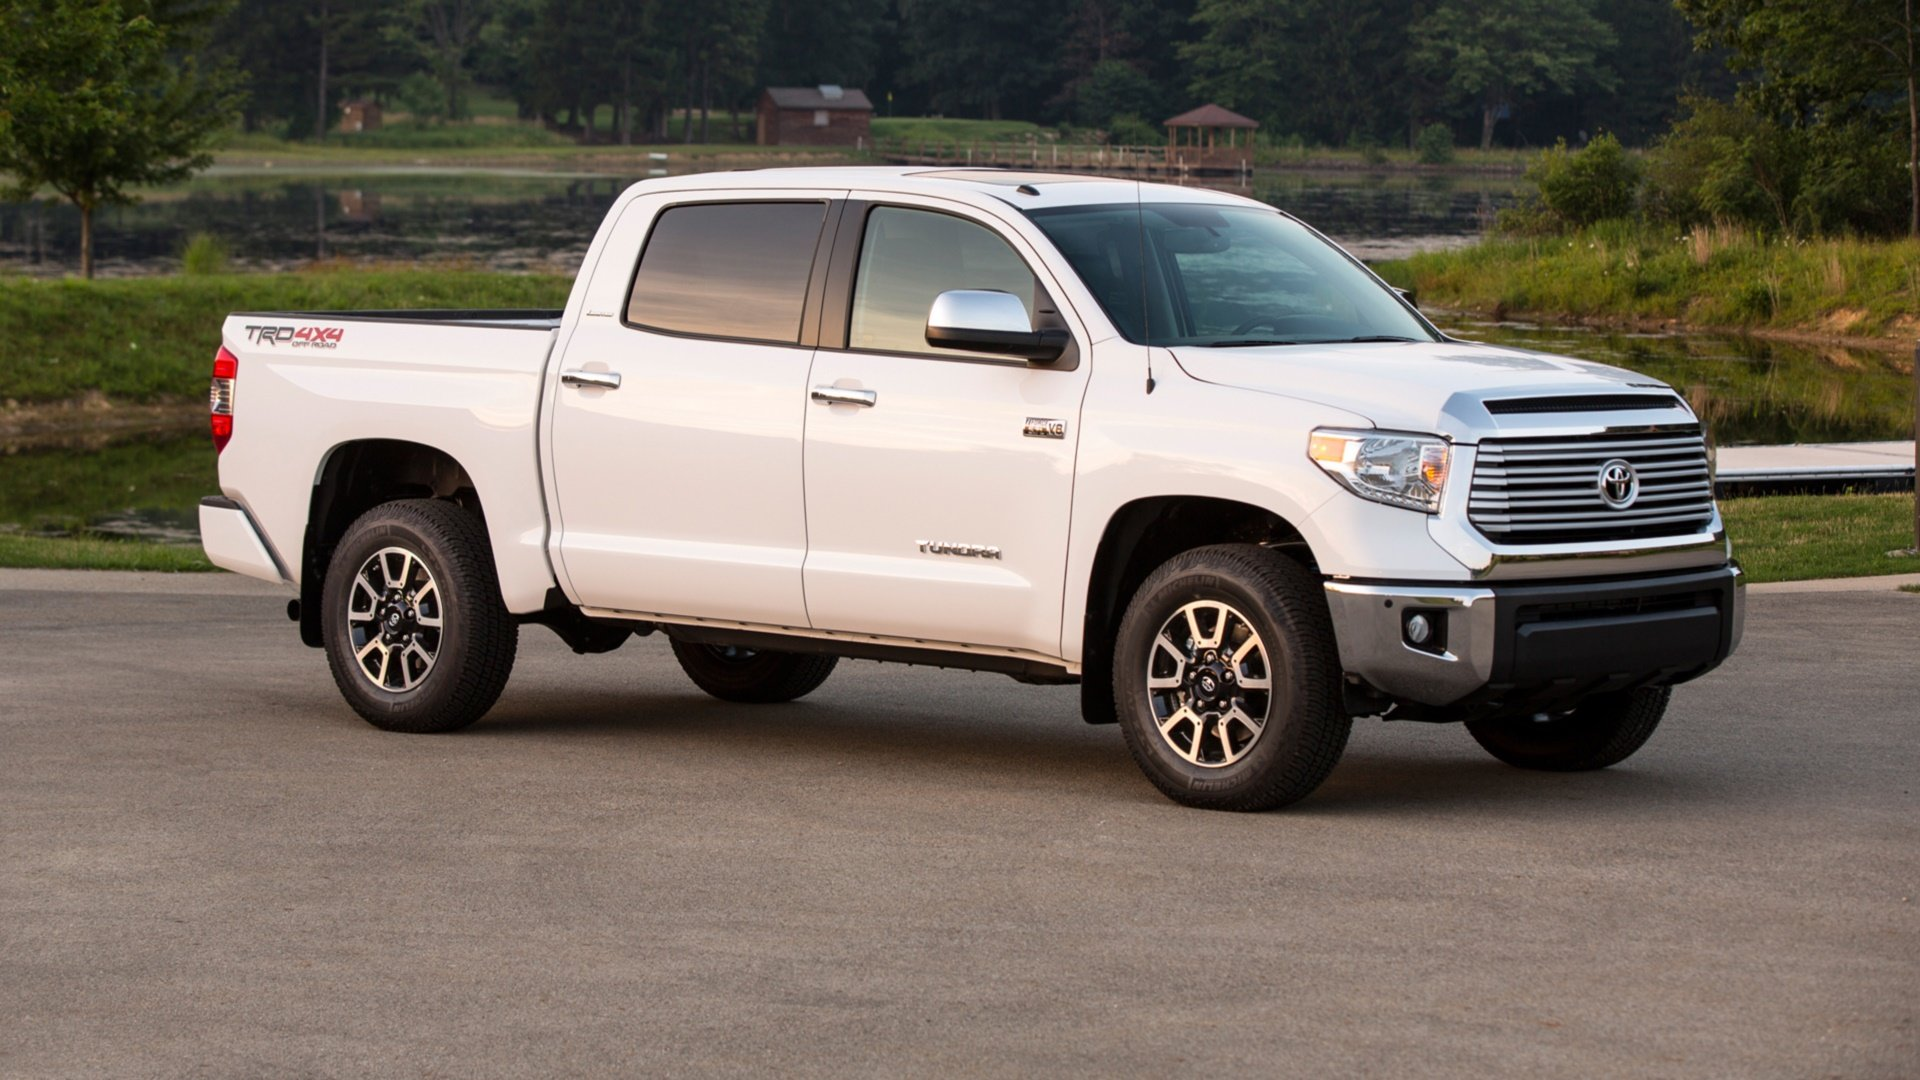 Best Toyota Tundra wallpaper ID:246607 for High Resolution full hd 1080p computer